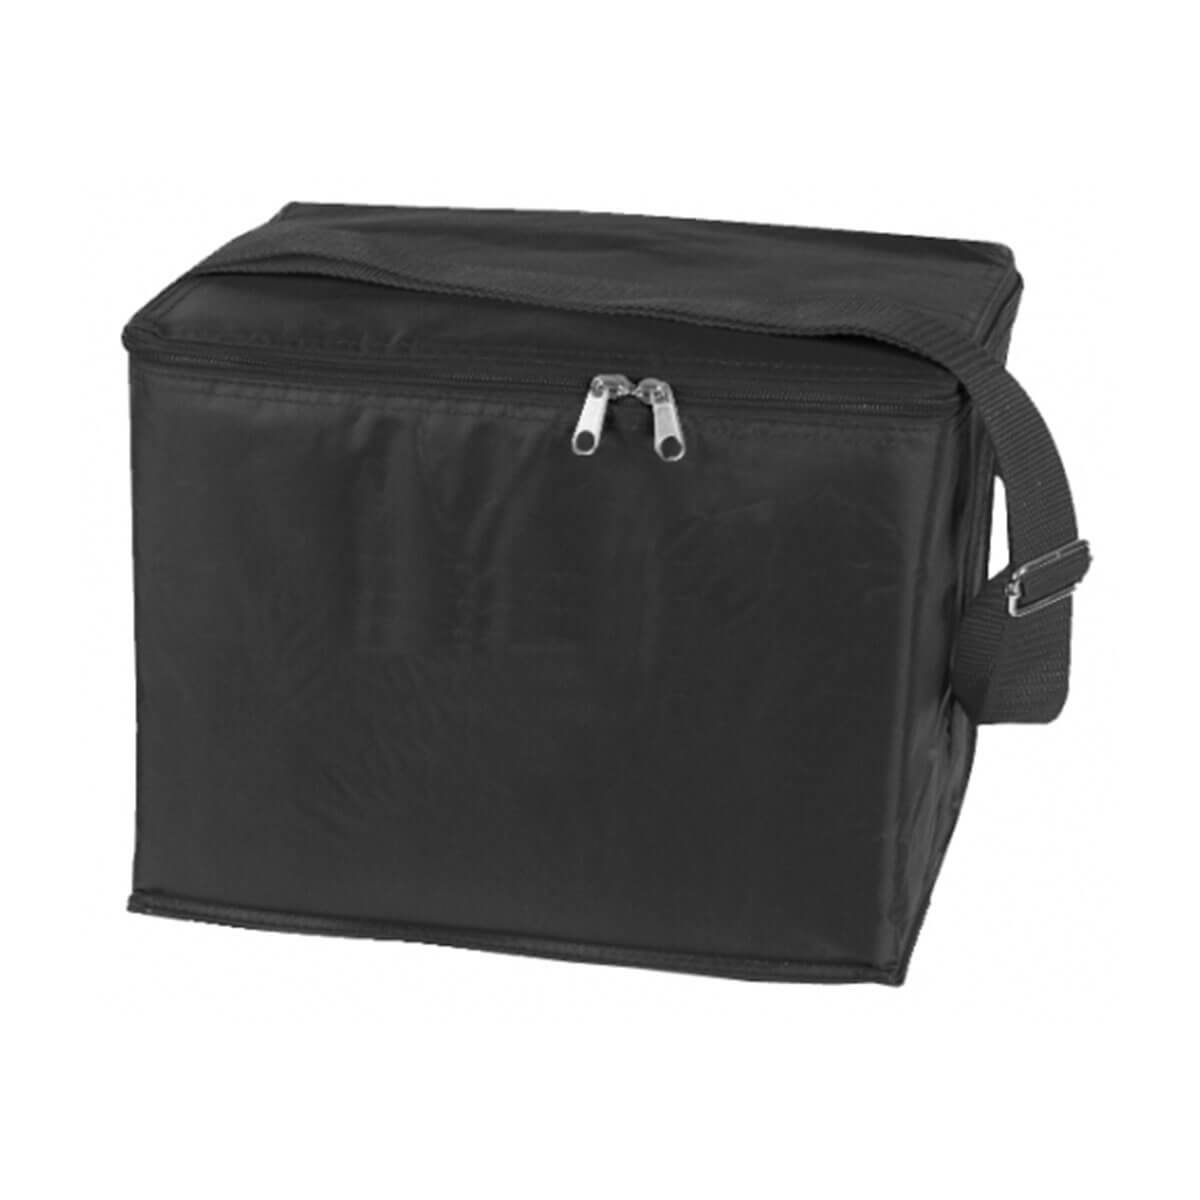 6 Can Cooler Bag-Black